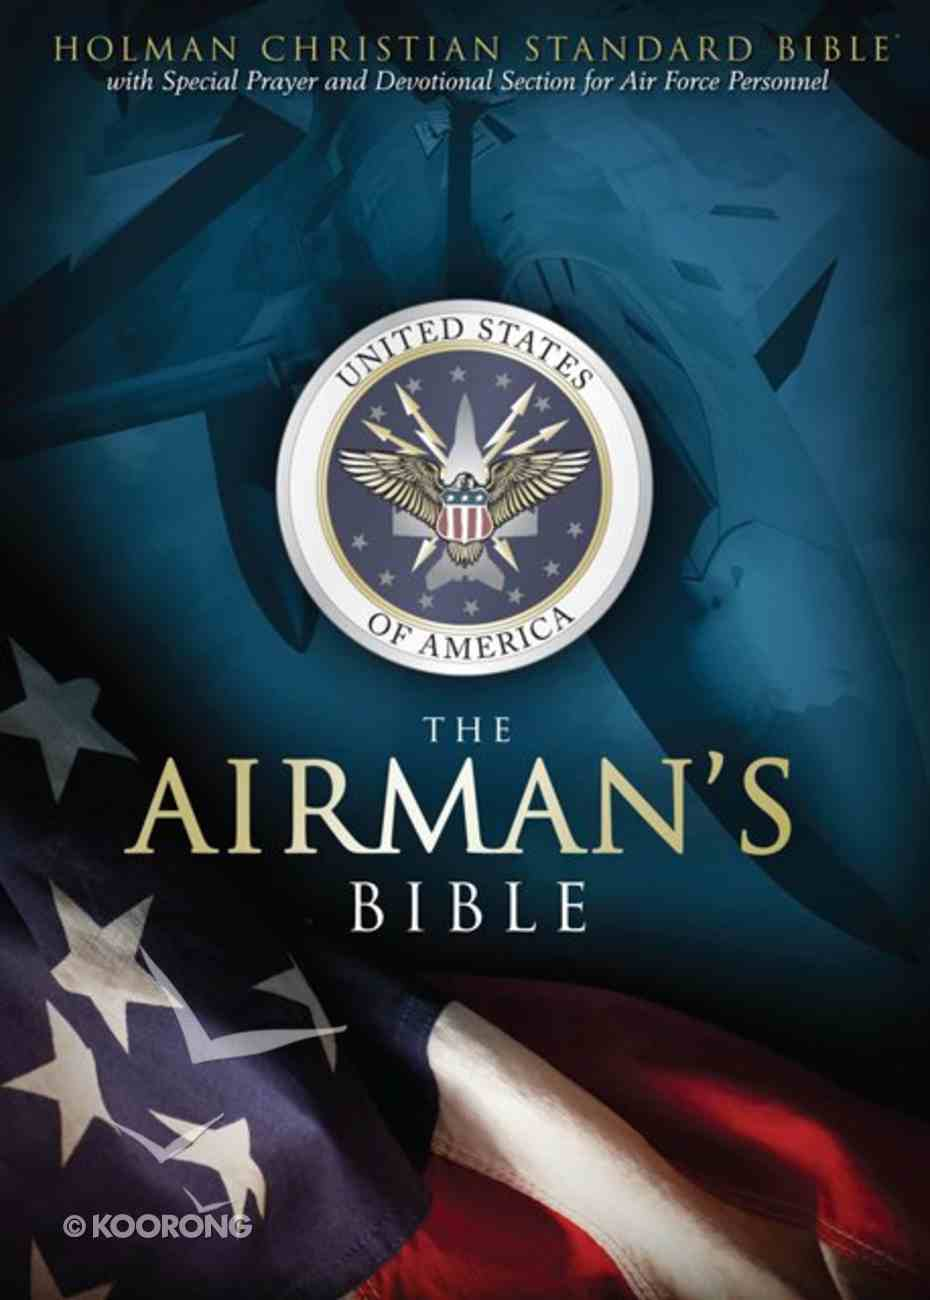 HCSB Airmans Bible, Blue Leathertouch Imitation Leather